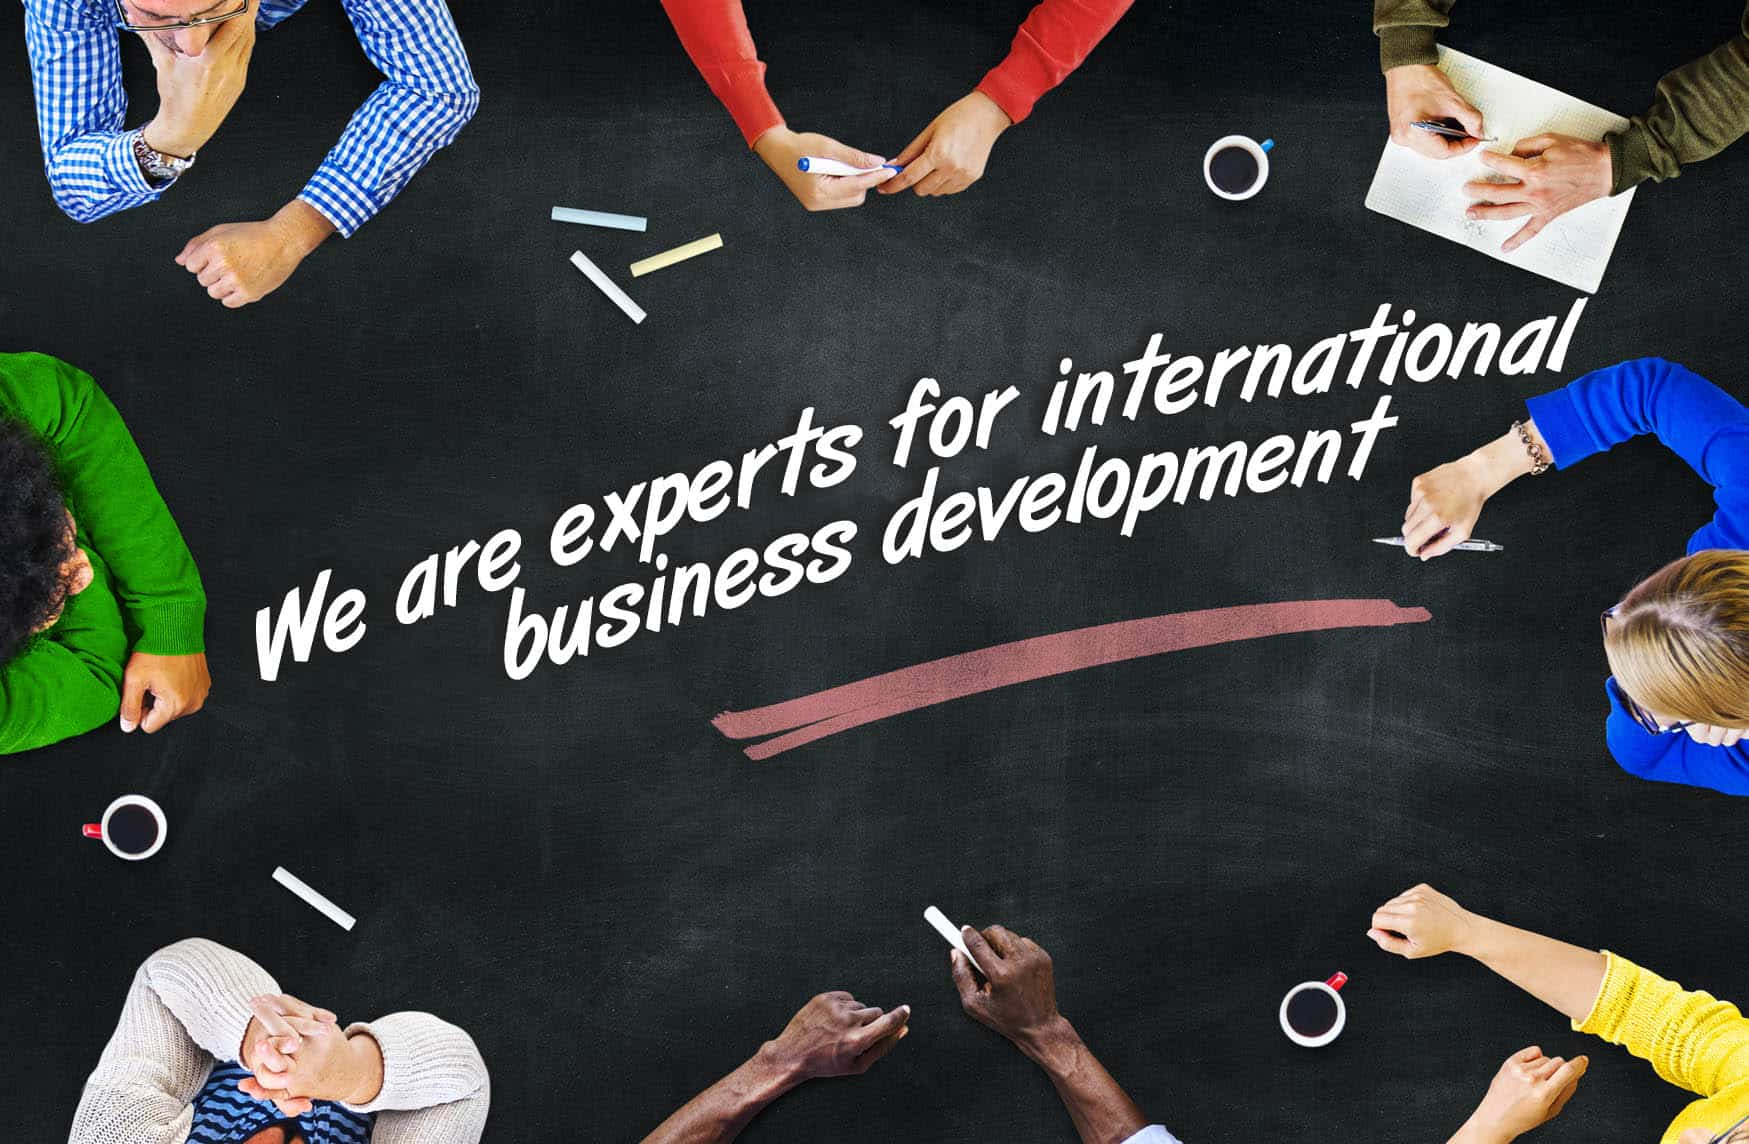 We are experts for international business development